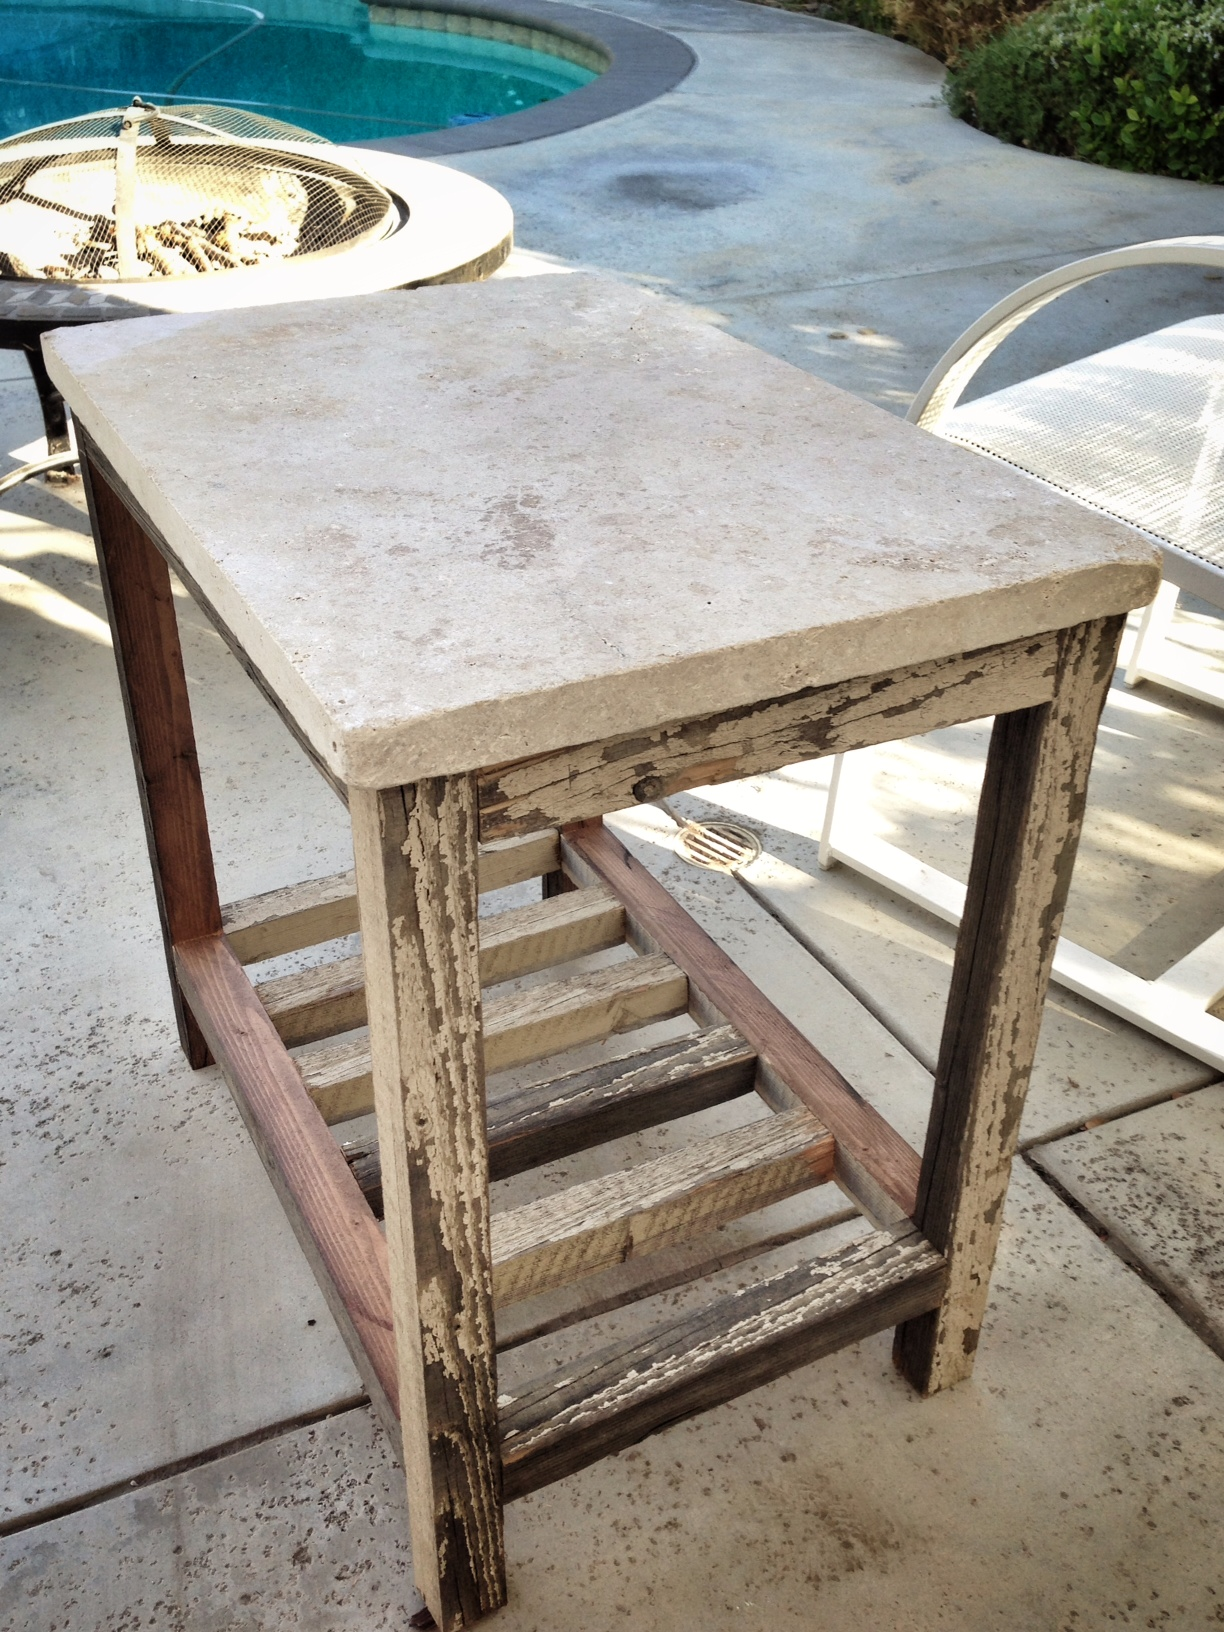 Ana White Travertine Paver Side Table Diy Projects